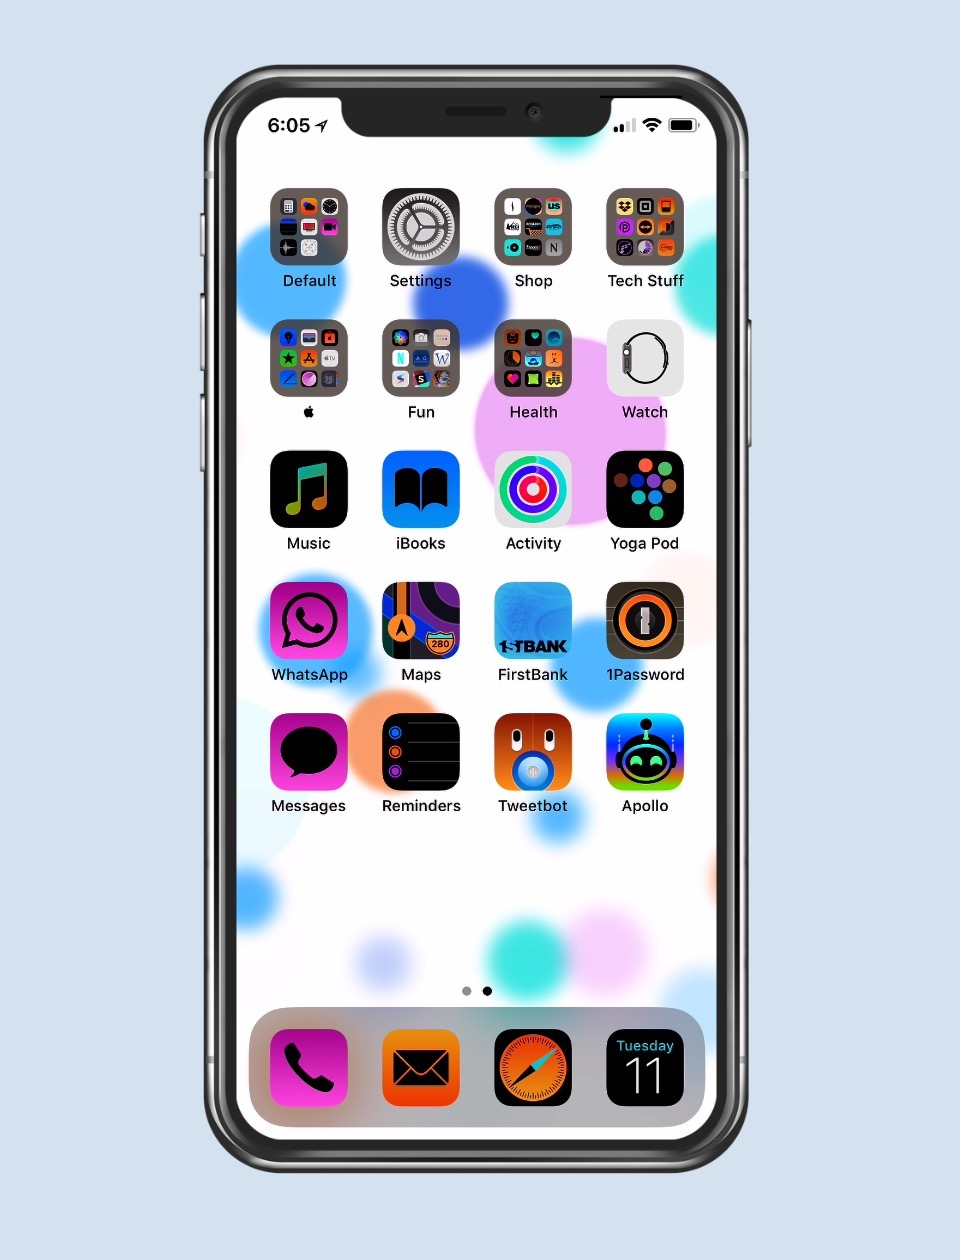 Inverted Colors On Iphone - Inverted Colors Iphone - HD Wallpaper